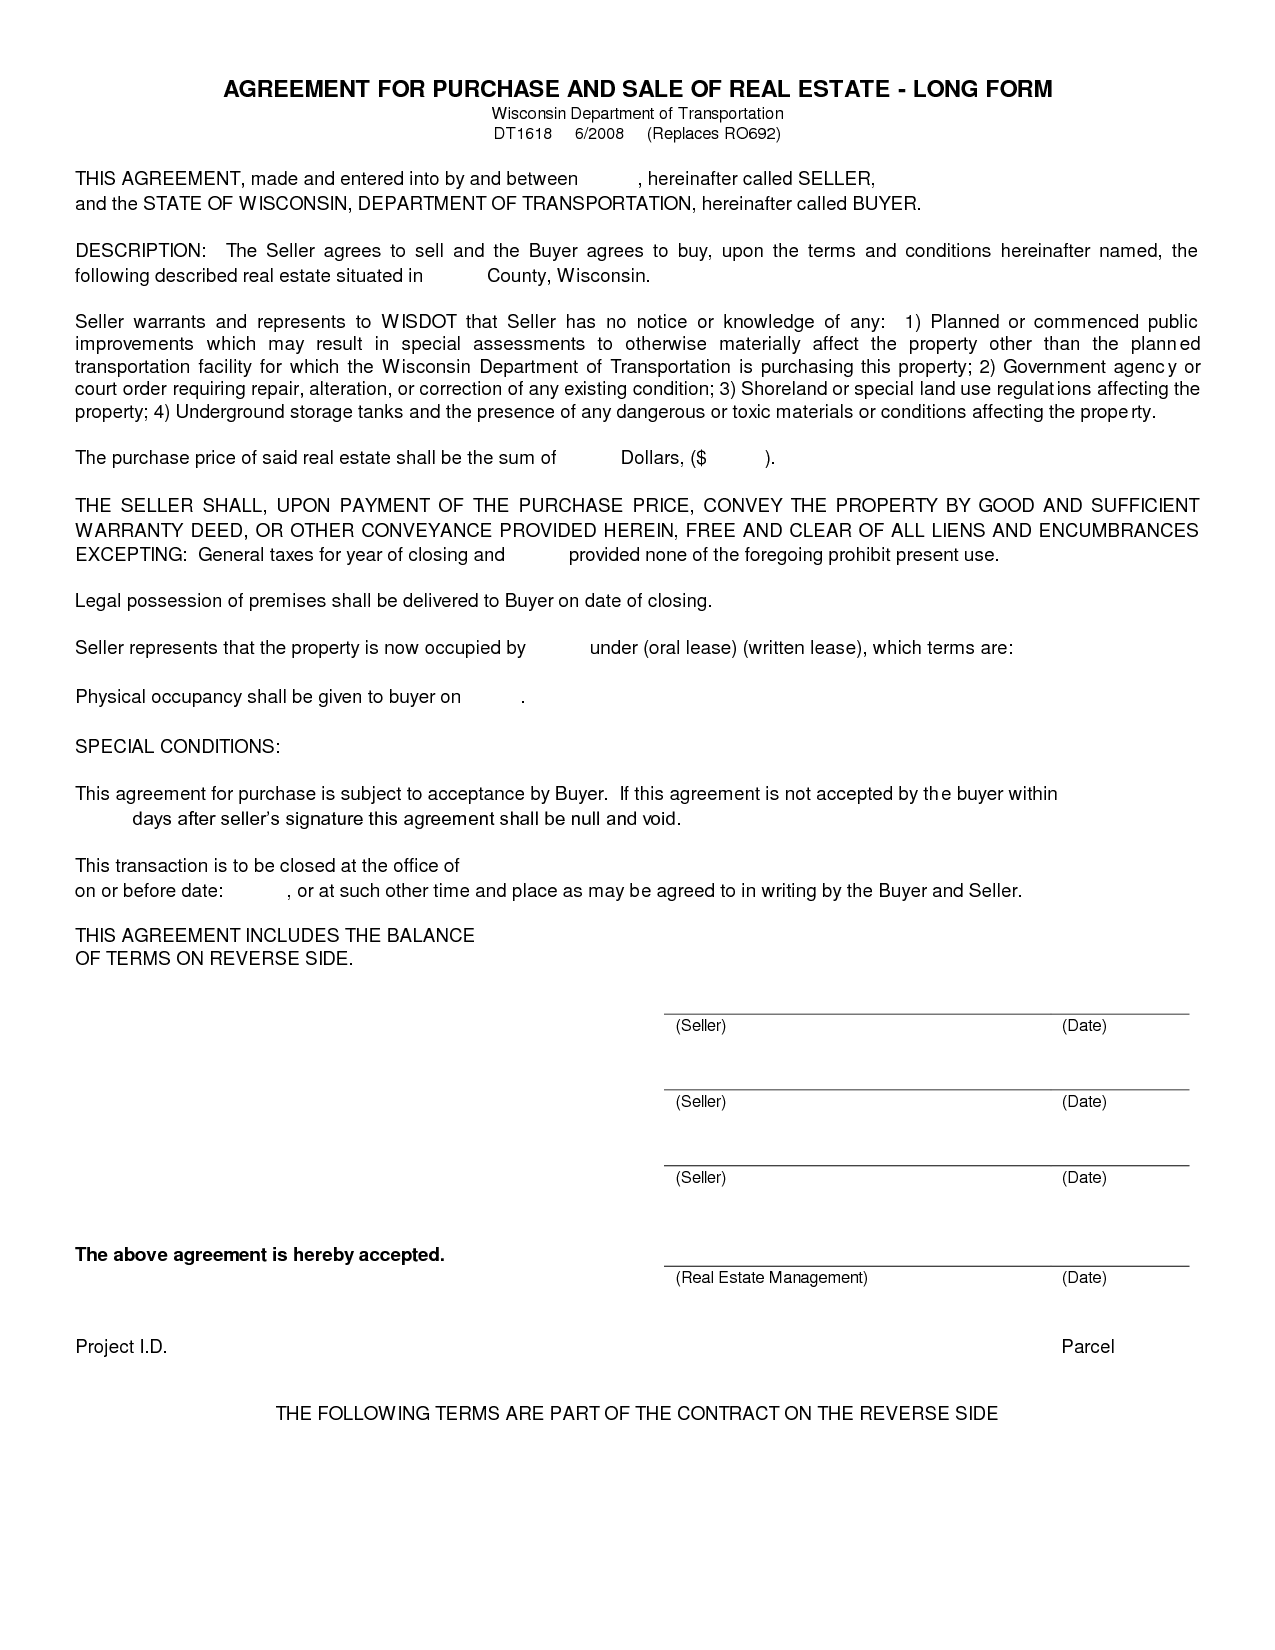 Free Blank Purchase Agreement Form Images   Agreement To Purchase Real  Estate Form Free Within Printable Purchase Agreement